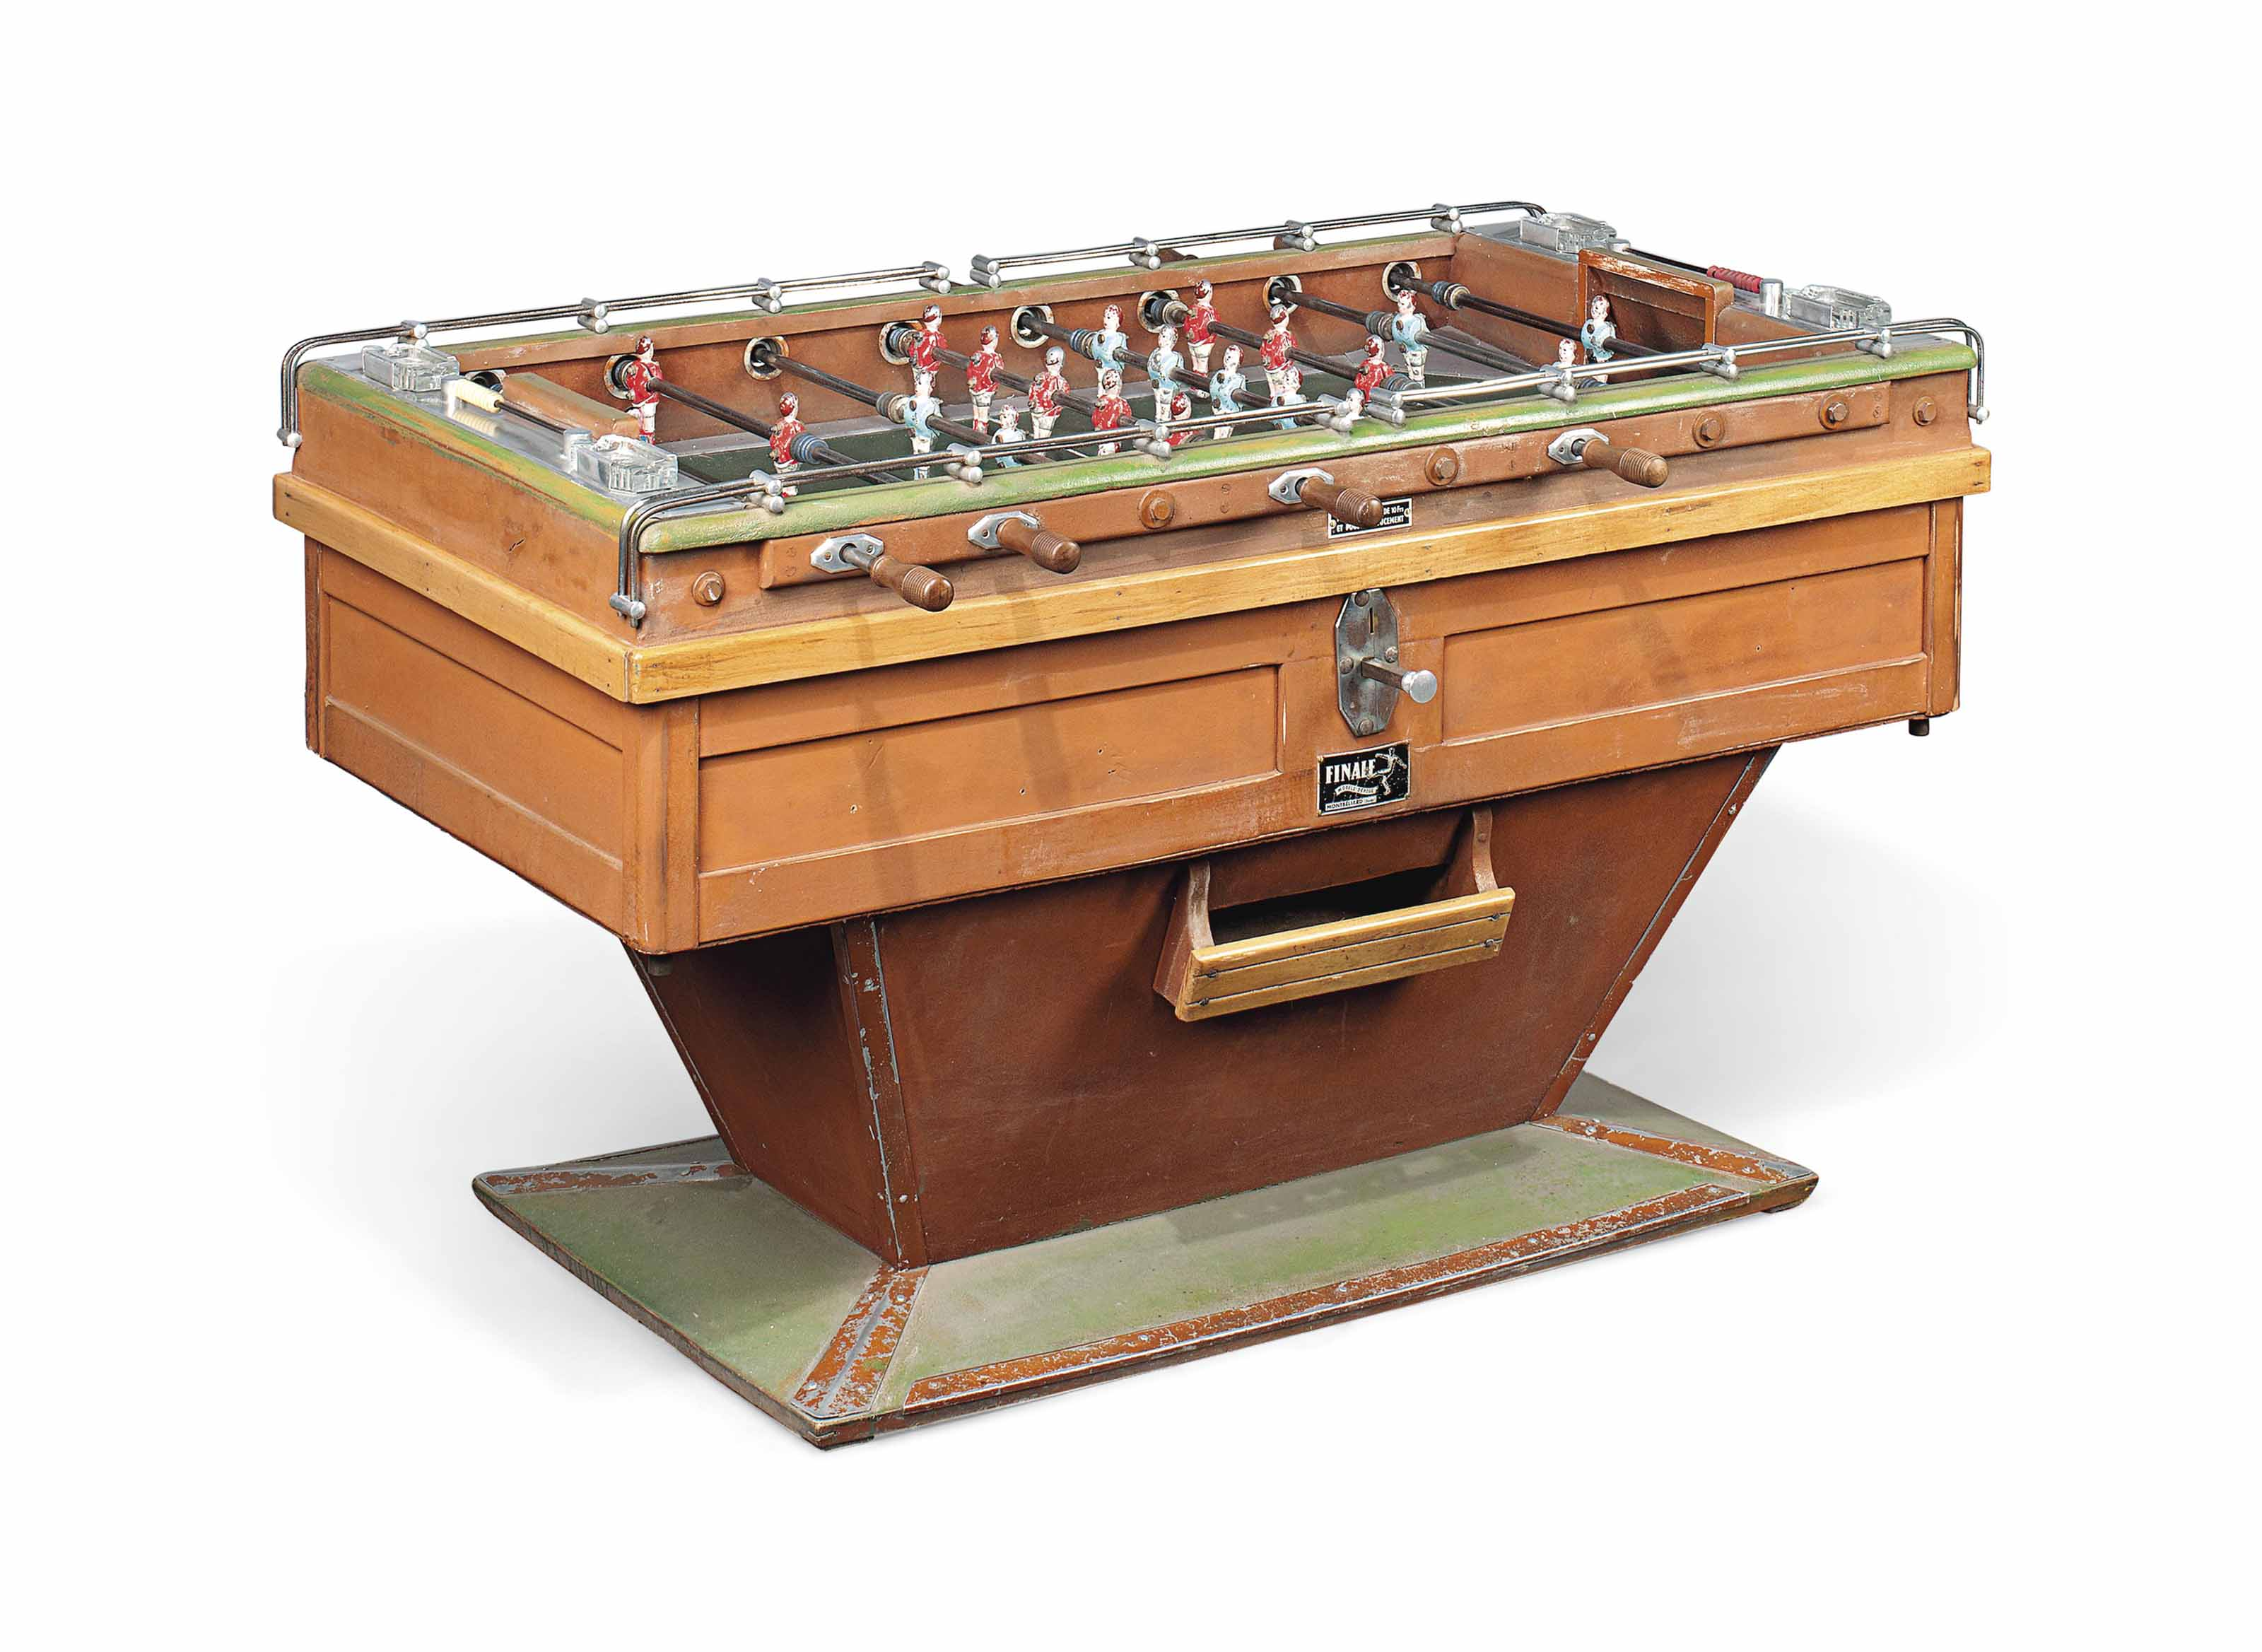 A FRENCH TABLE FOOTBALL GAME